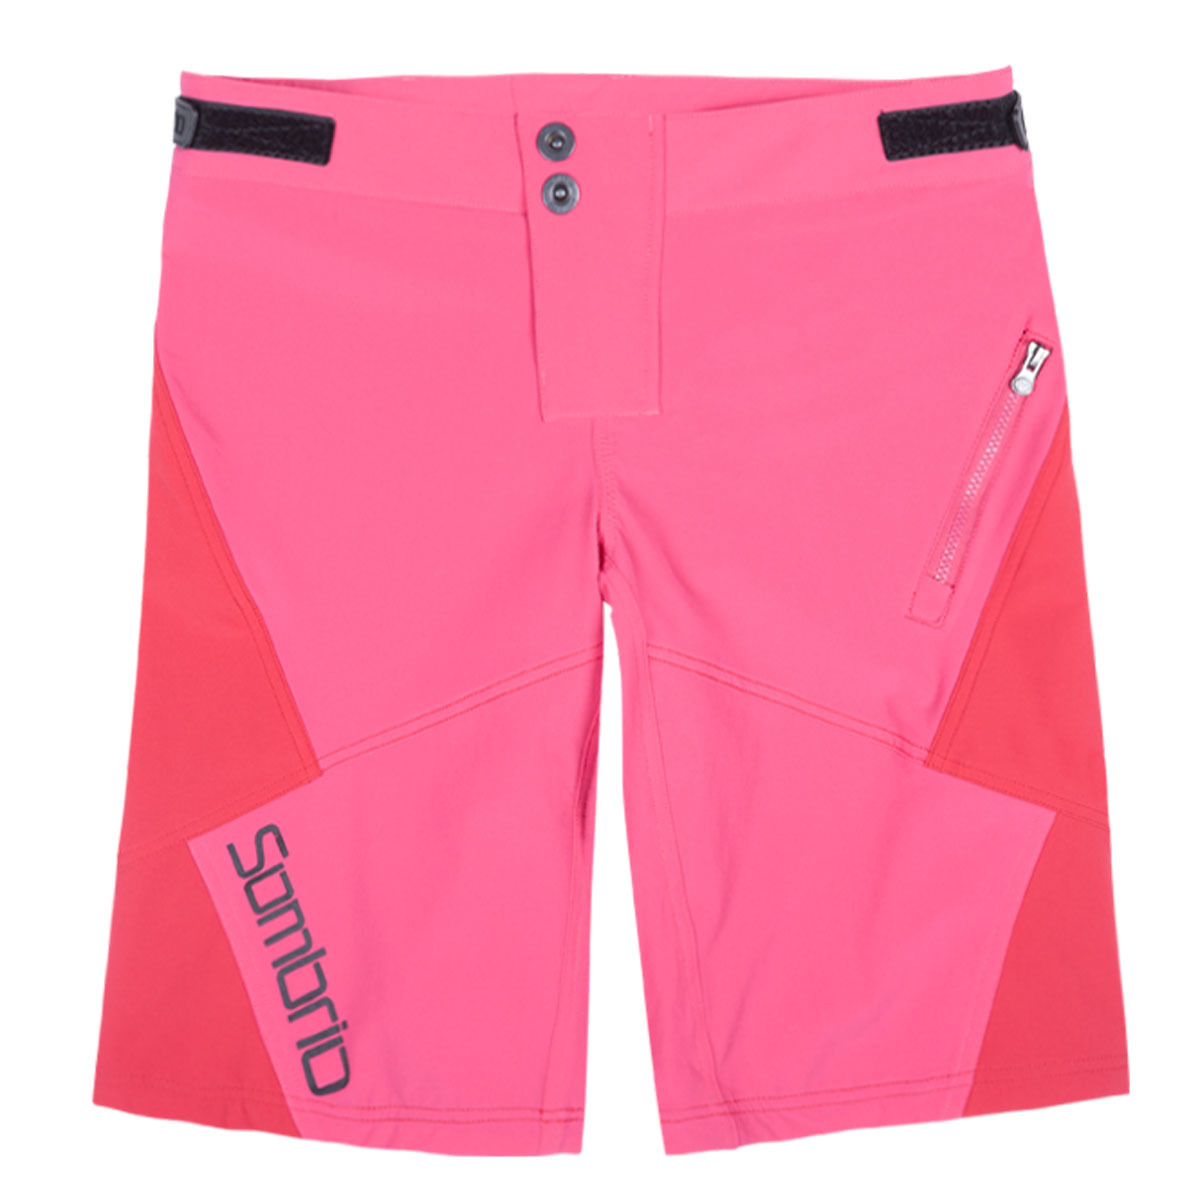 Sombrio Drift Women's Mountain Bike  Mtb Baggy Cycling Shorts Pink Size L New  supply quality product